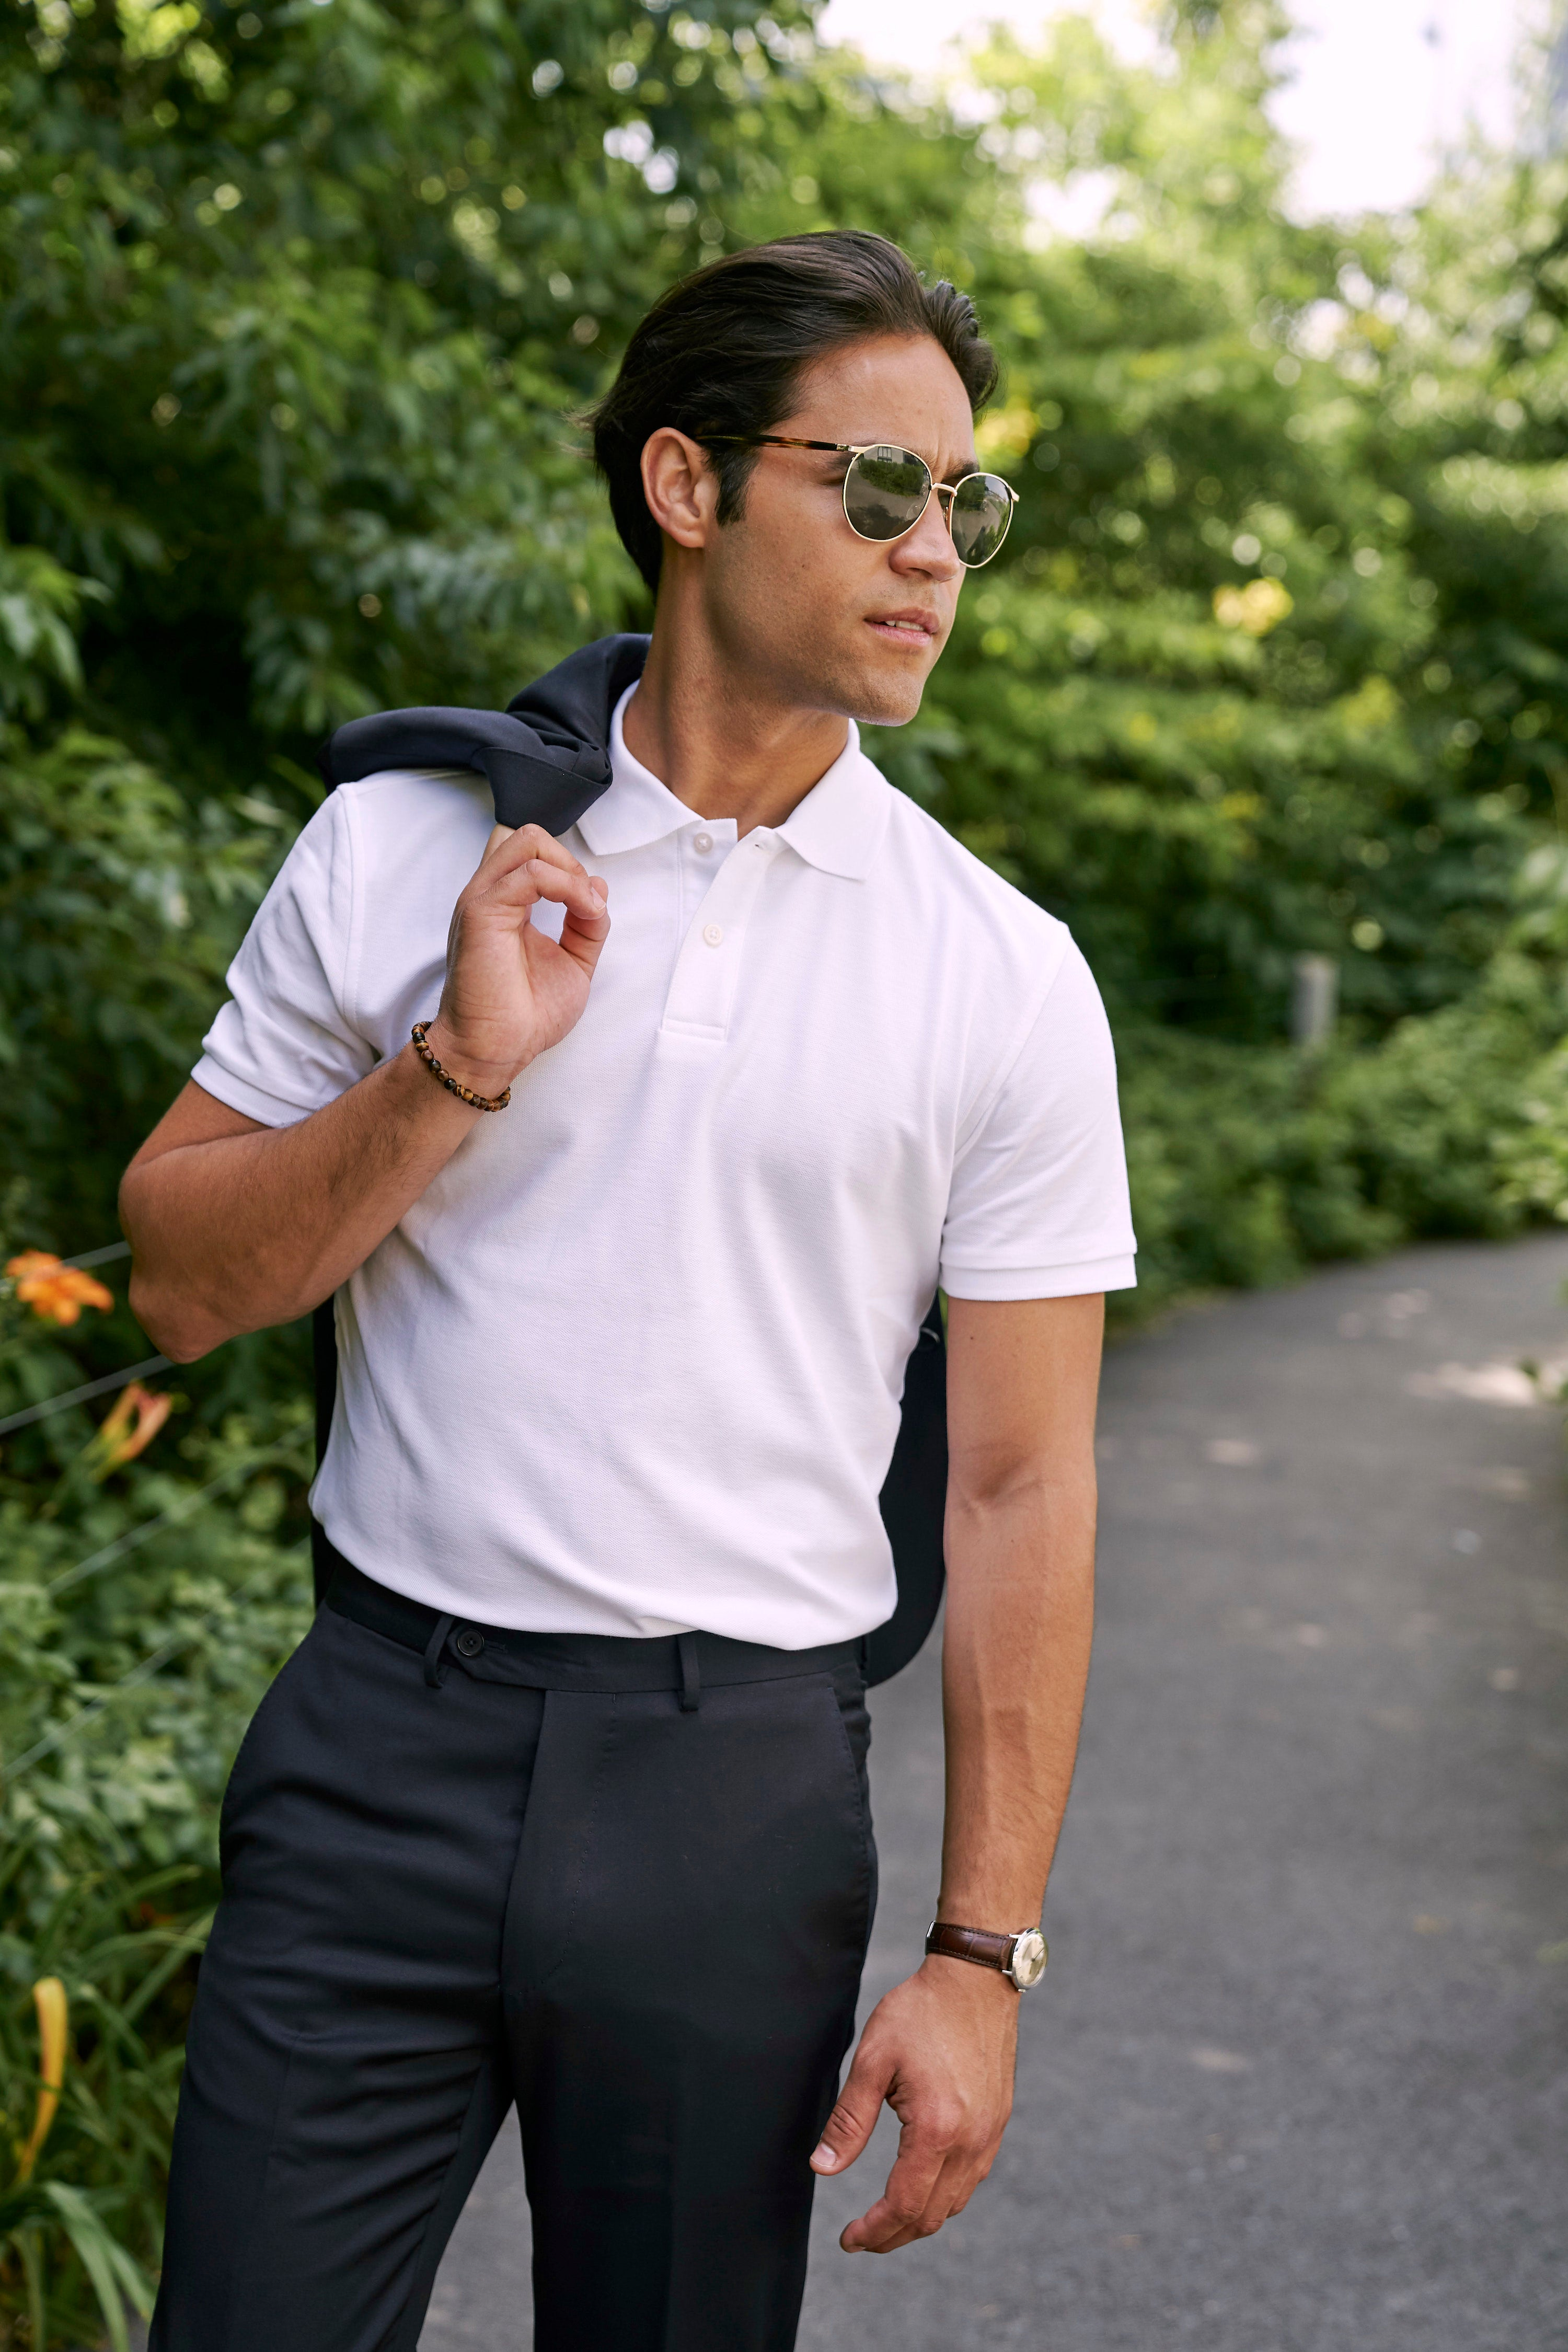 Polo shirt with suit